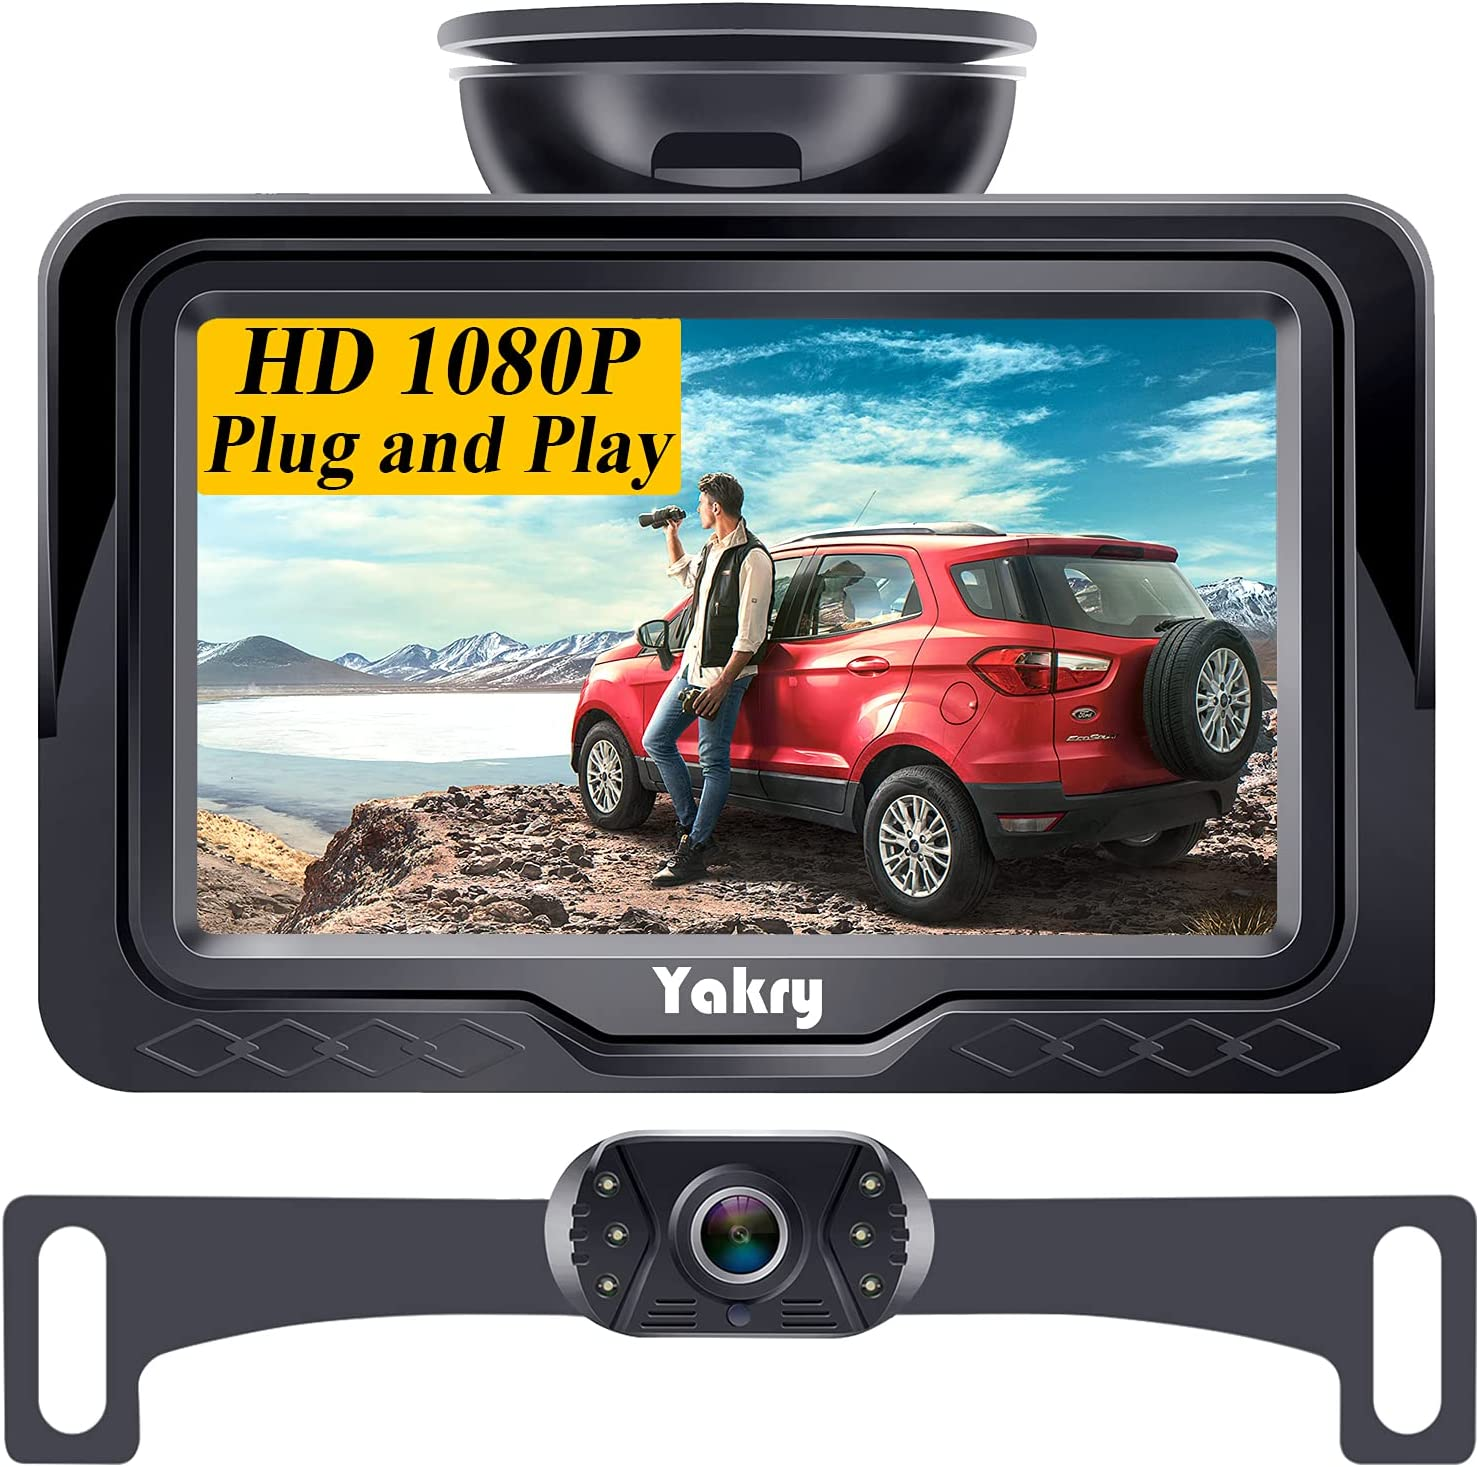 Backup Max Challenge the lowest price of Japan 80% OFF Camera for Car HD 1080P with Monitor Kit 6 Wire DIY One L